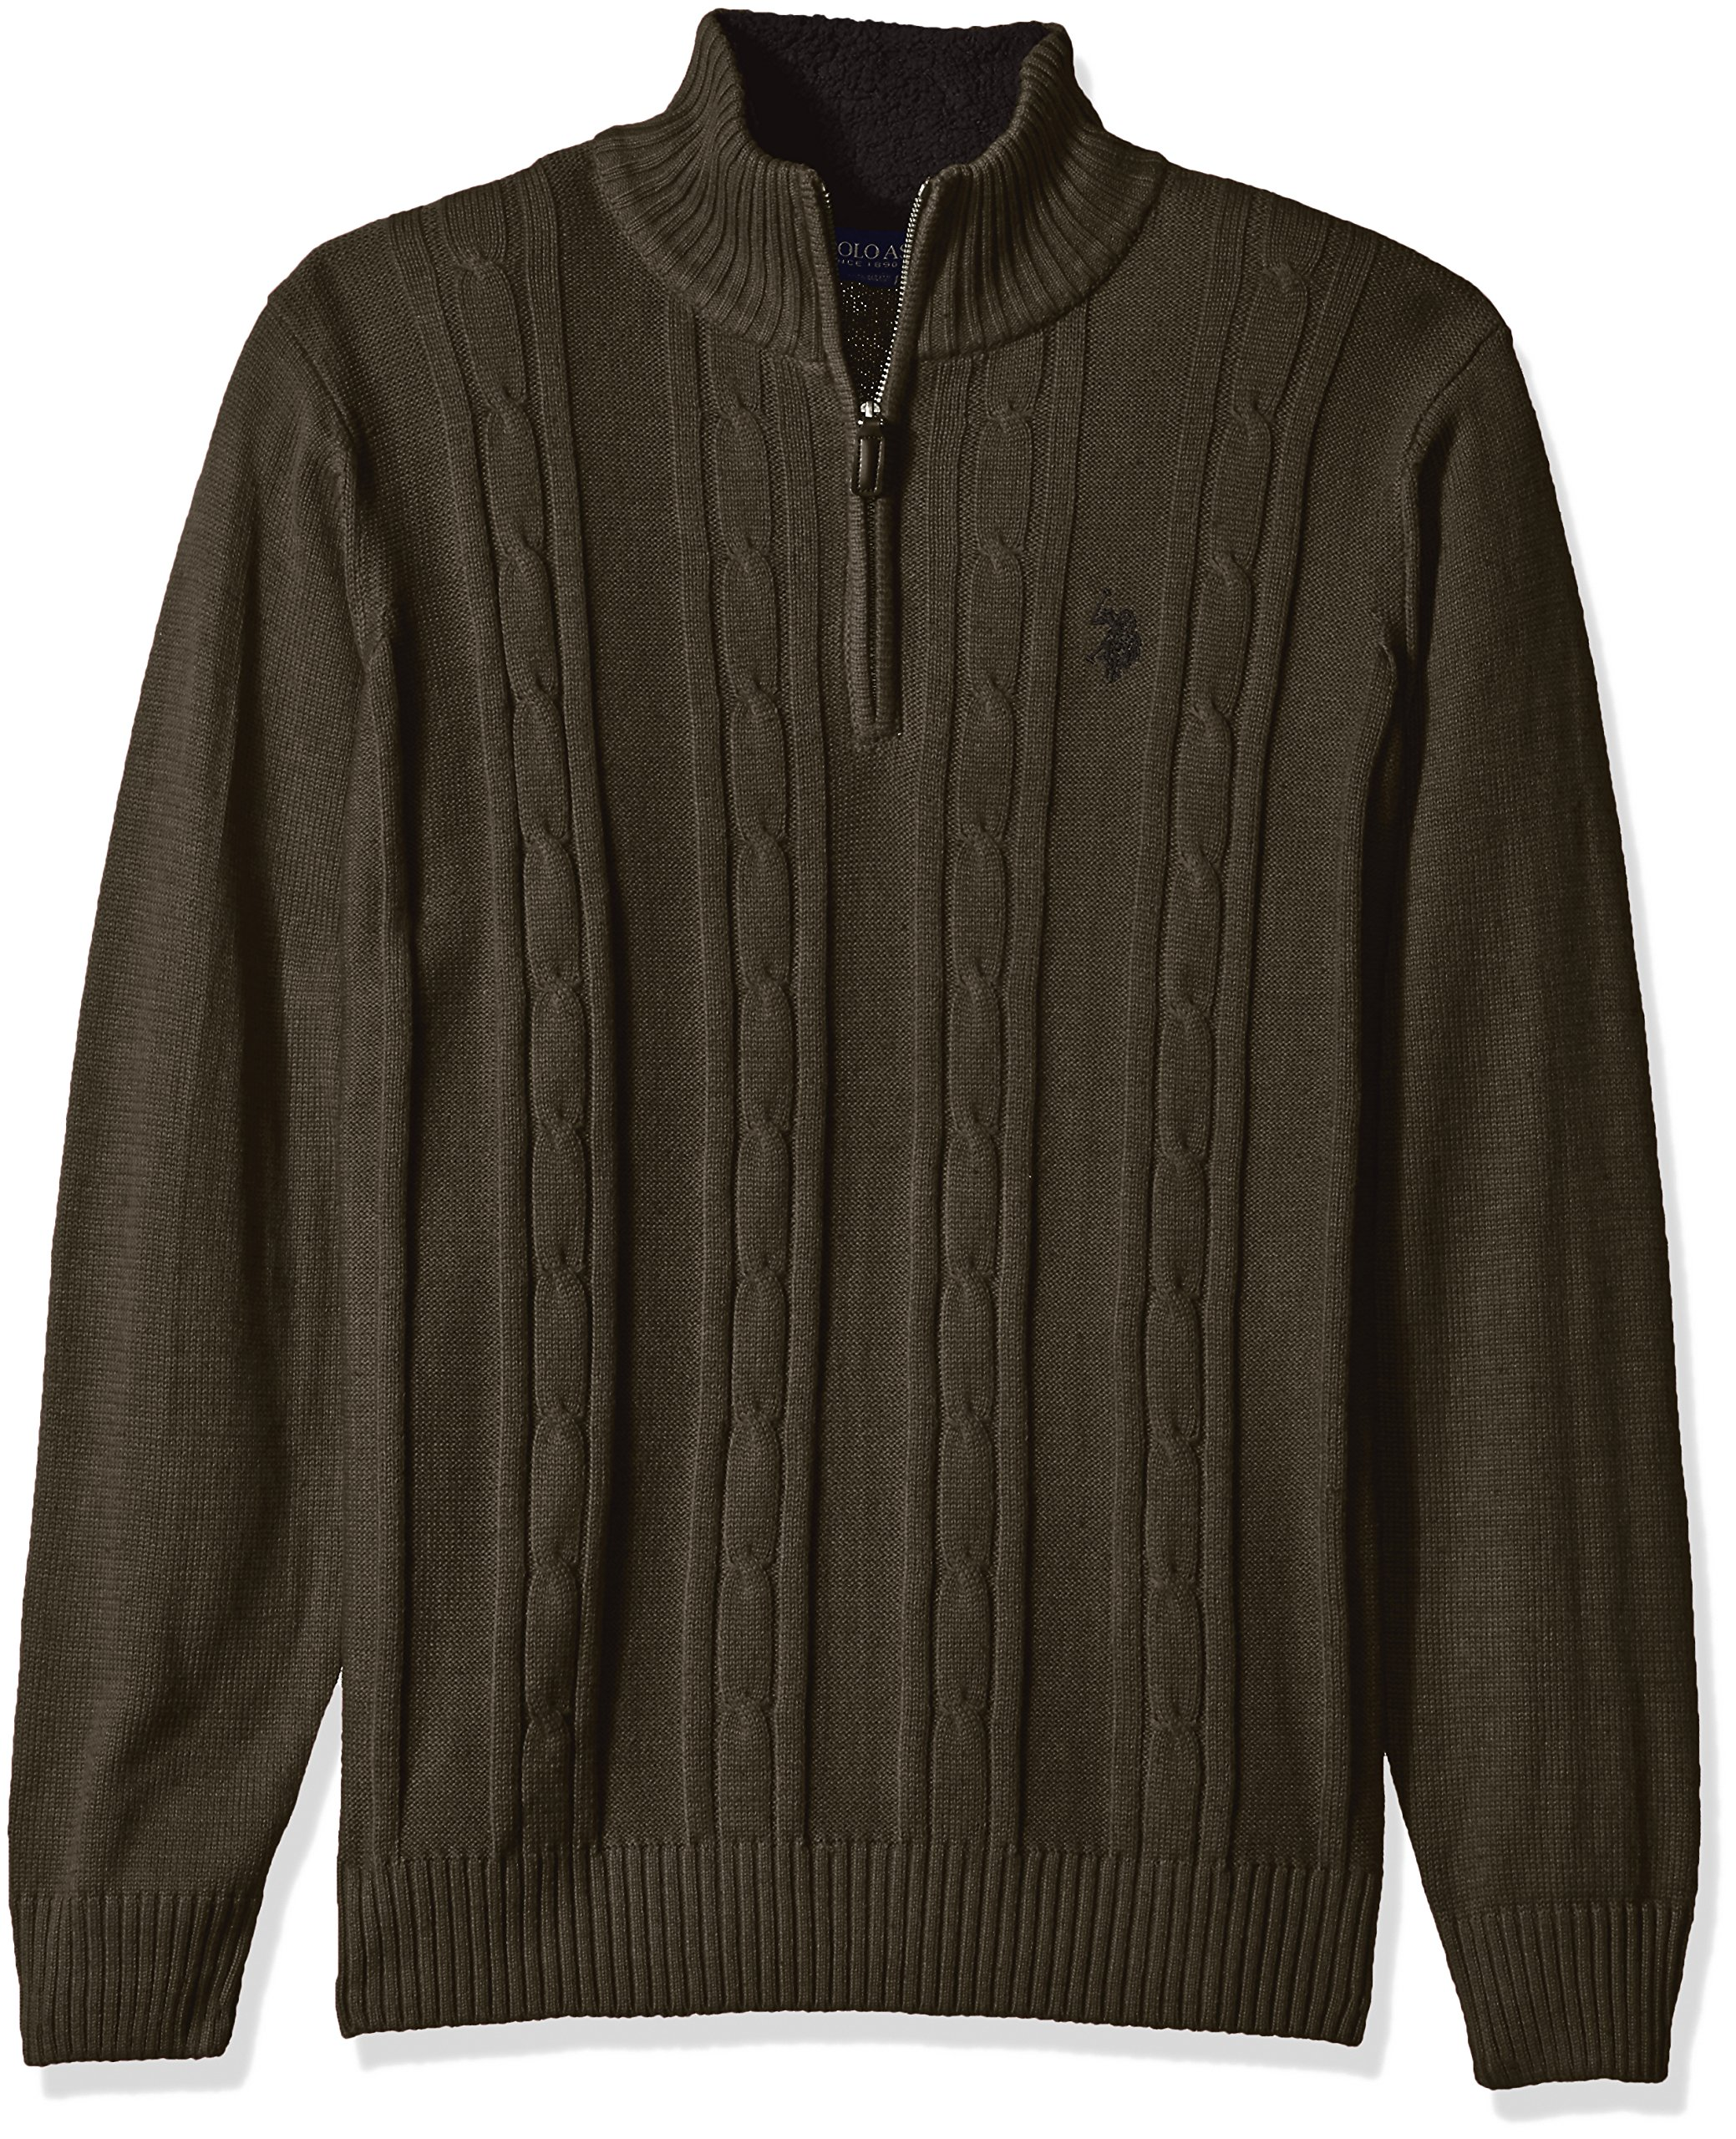 U.S. Polo Assn. Men's Solid Cable 1/4 Zip Sweater, Parsley Heather, Small by U.S. Polo Assn.